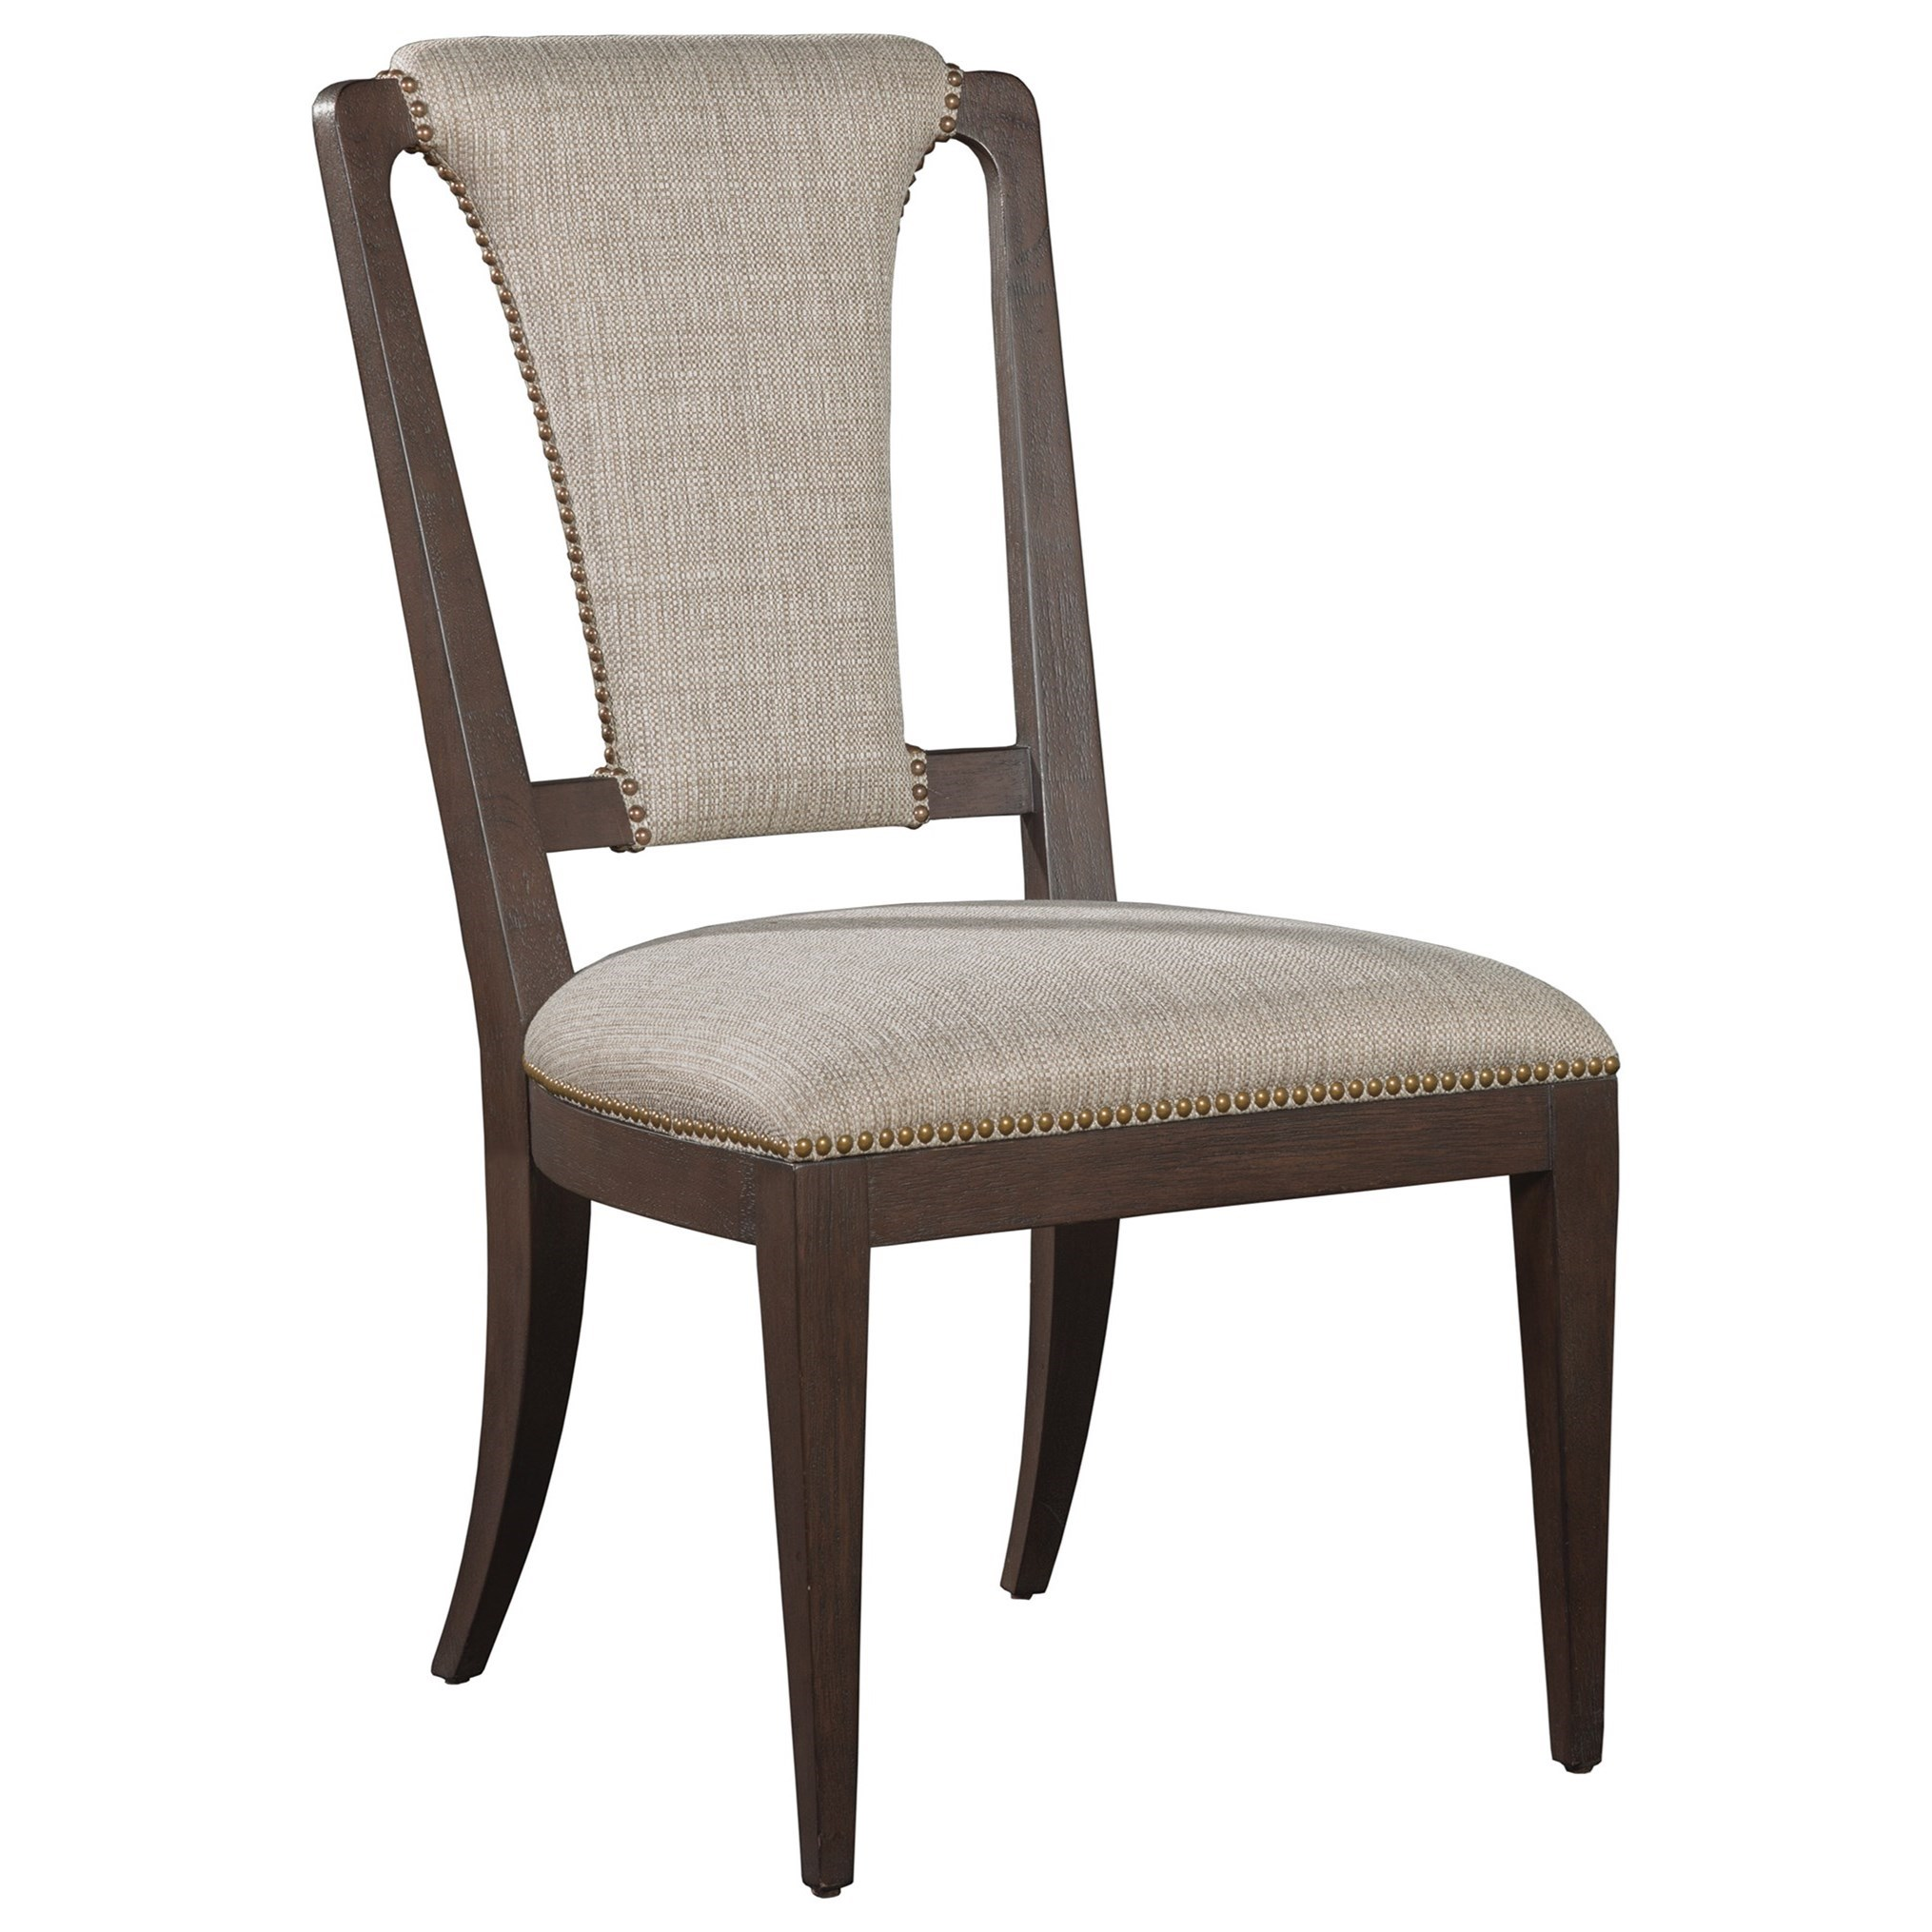 Verbatim Upholstered Side Chair by Artistica at Baer's Furniture